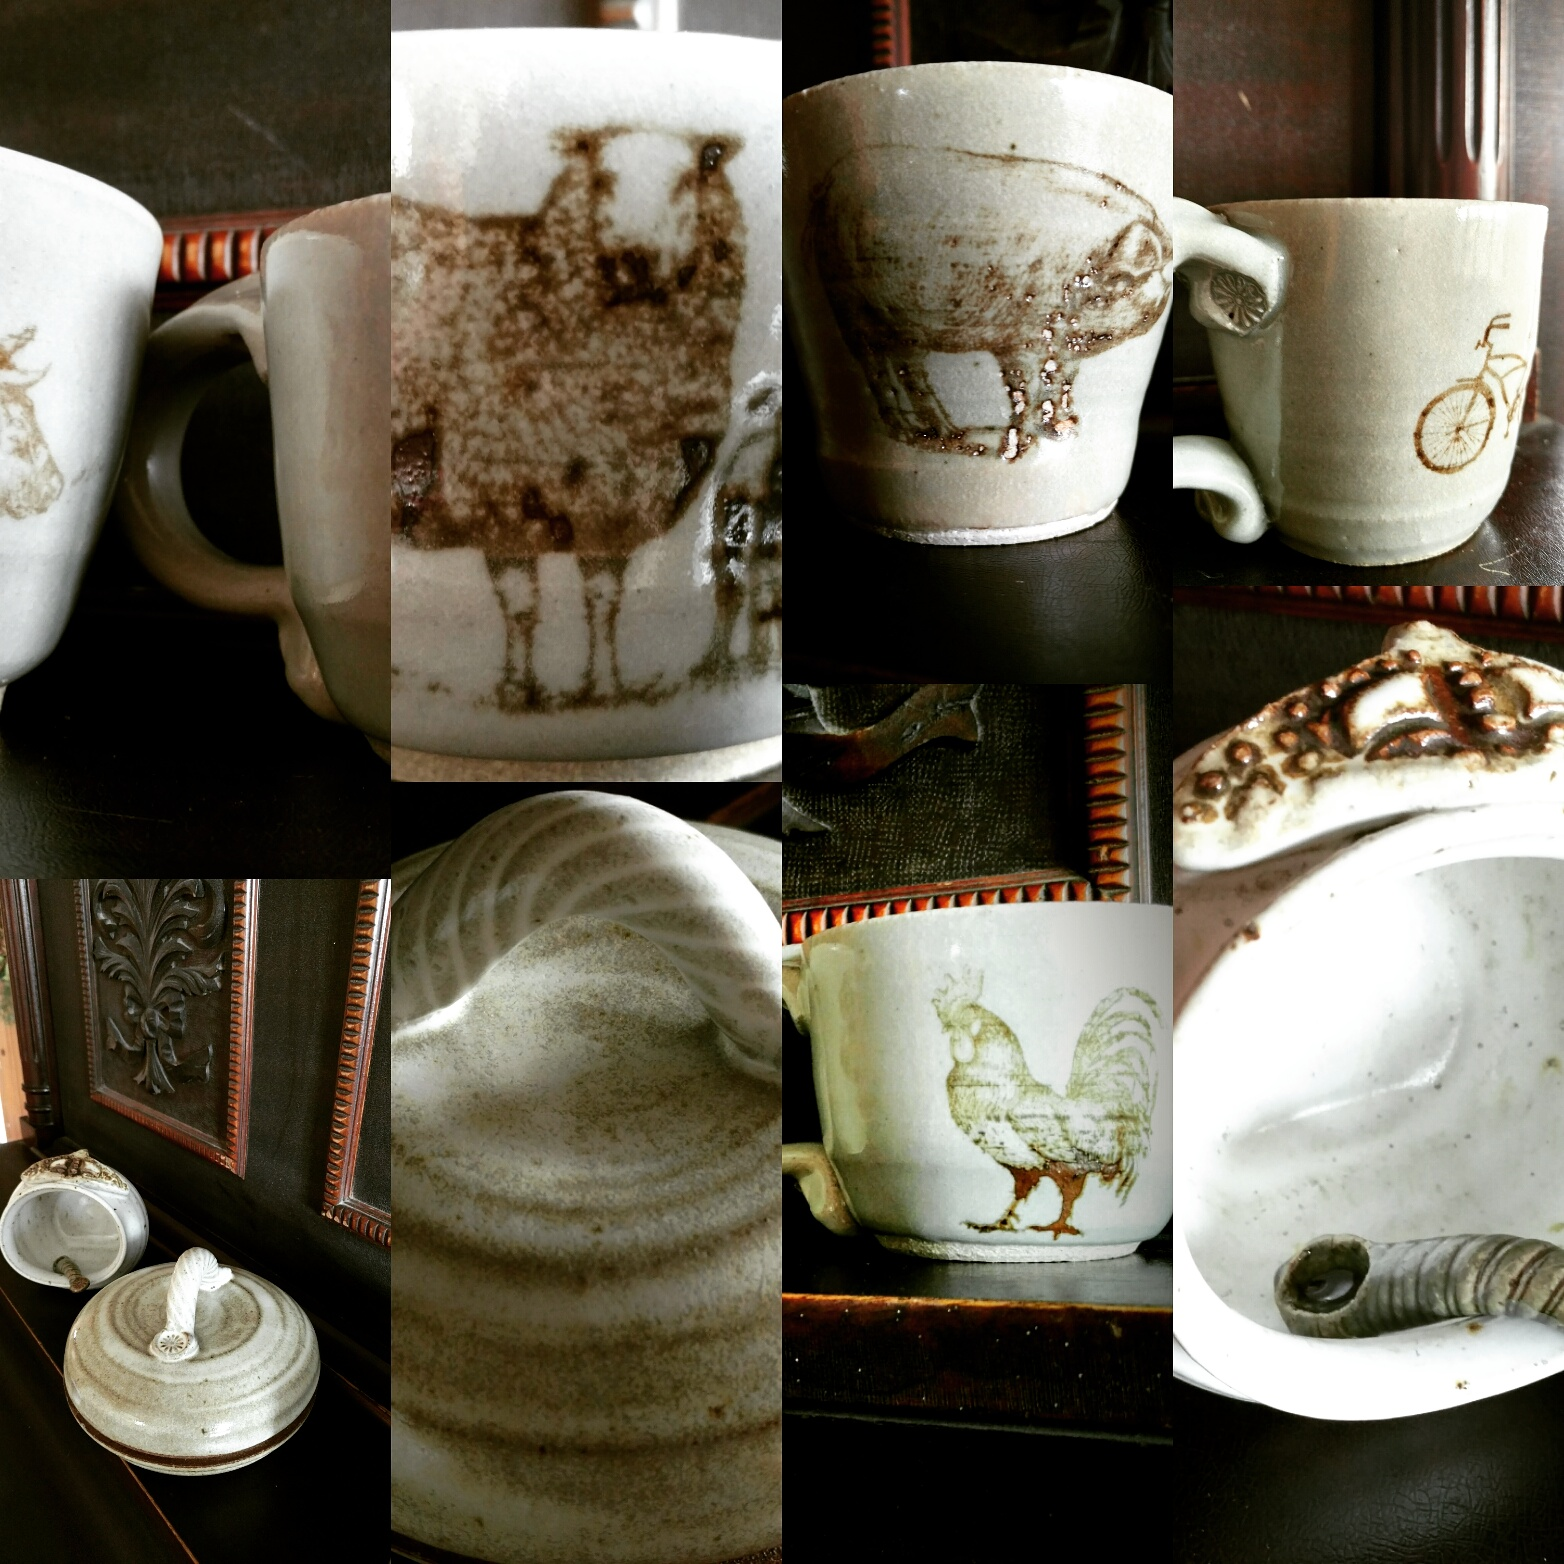 a variety of silkscreen images on mugs and ceramic vessels